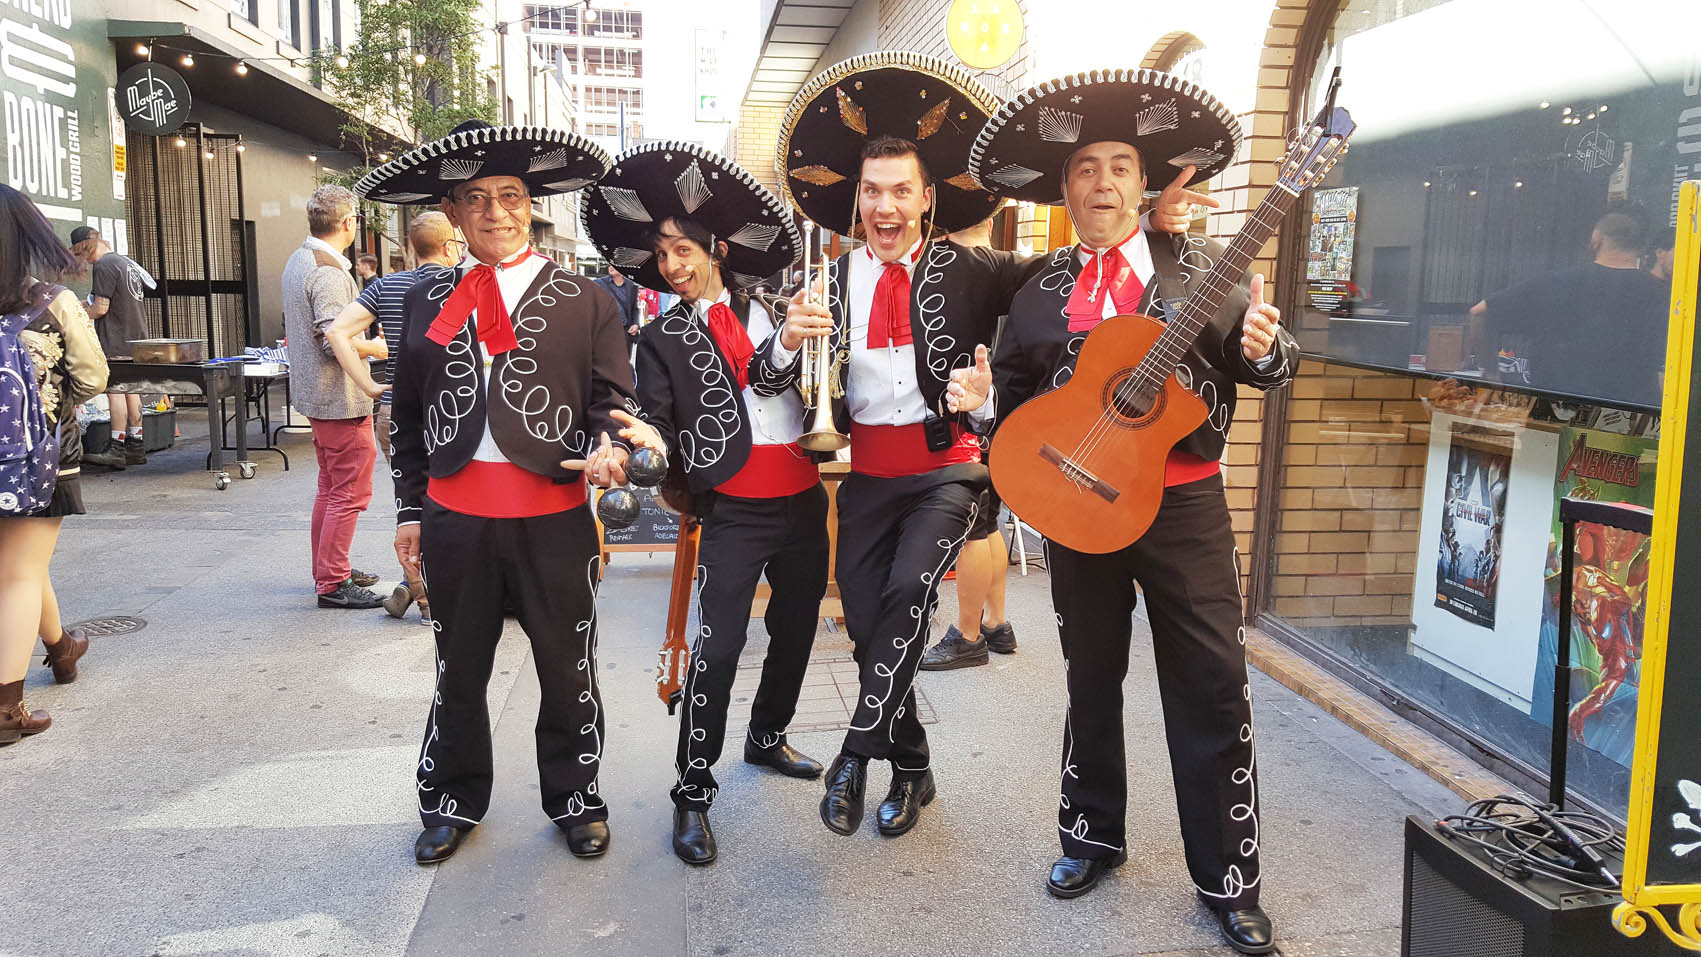 street-party-mexican-theme-adelaide-australia-singapore-melbourne-sydney-perth-duabi-hong-kong-japan-south-korea, event manager adelaide australia, wedding themes, wedding entertainment